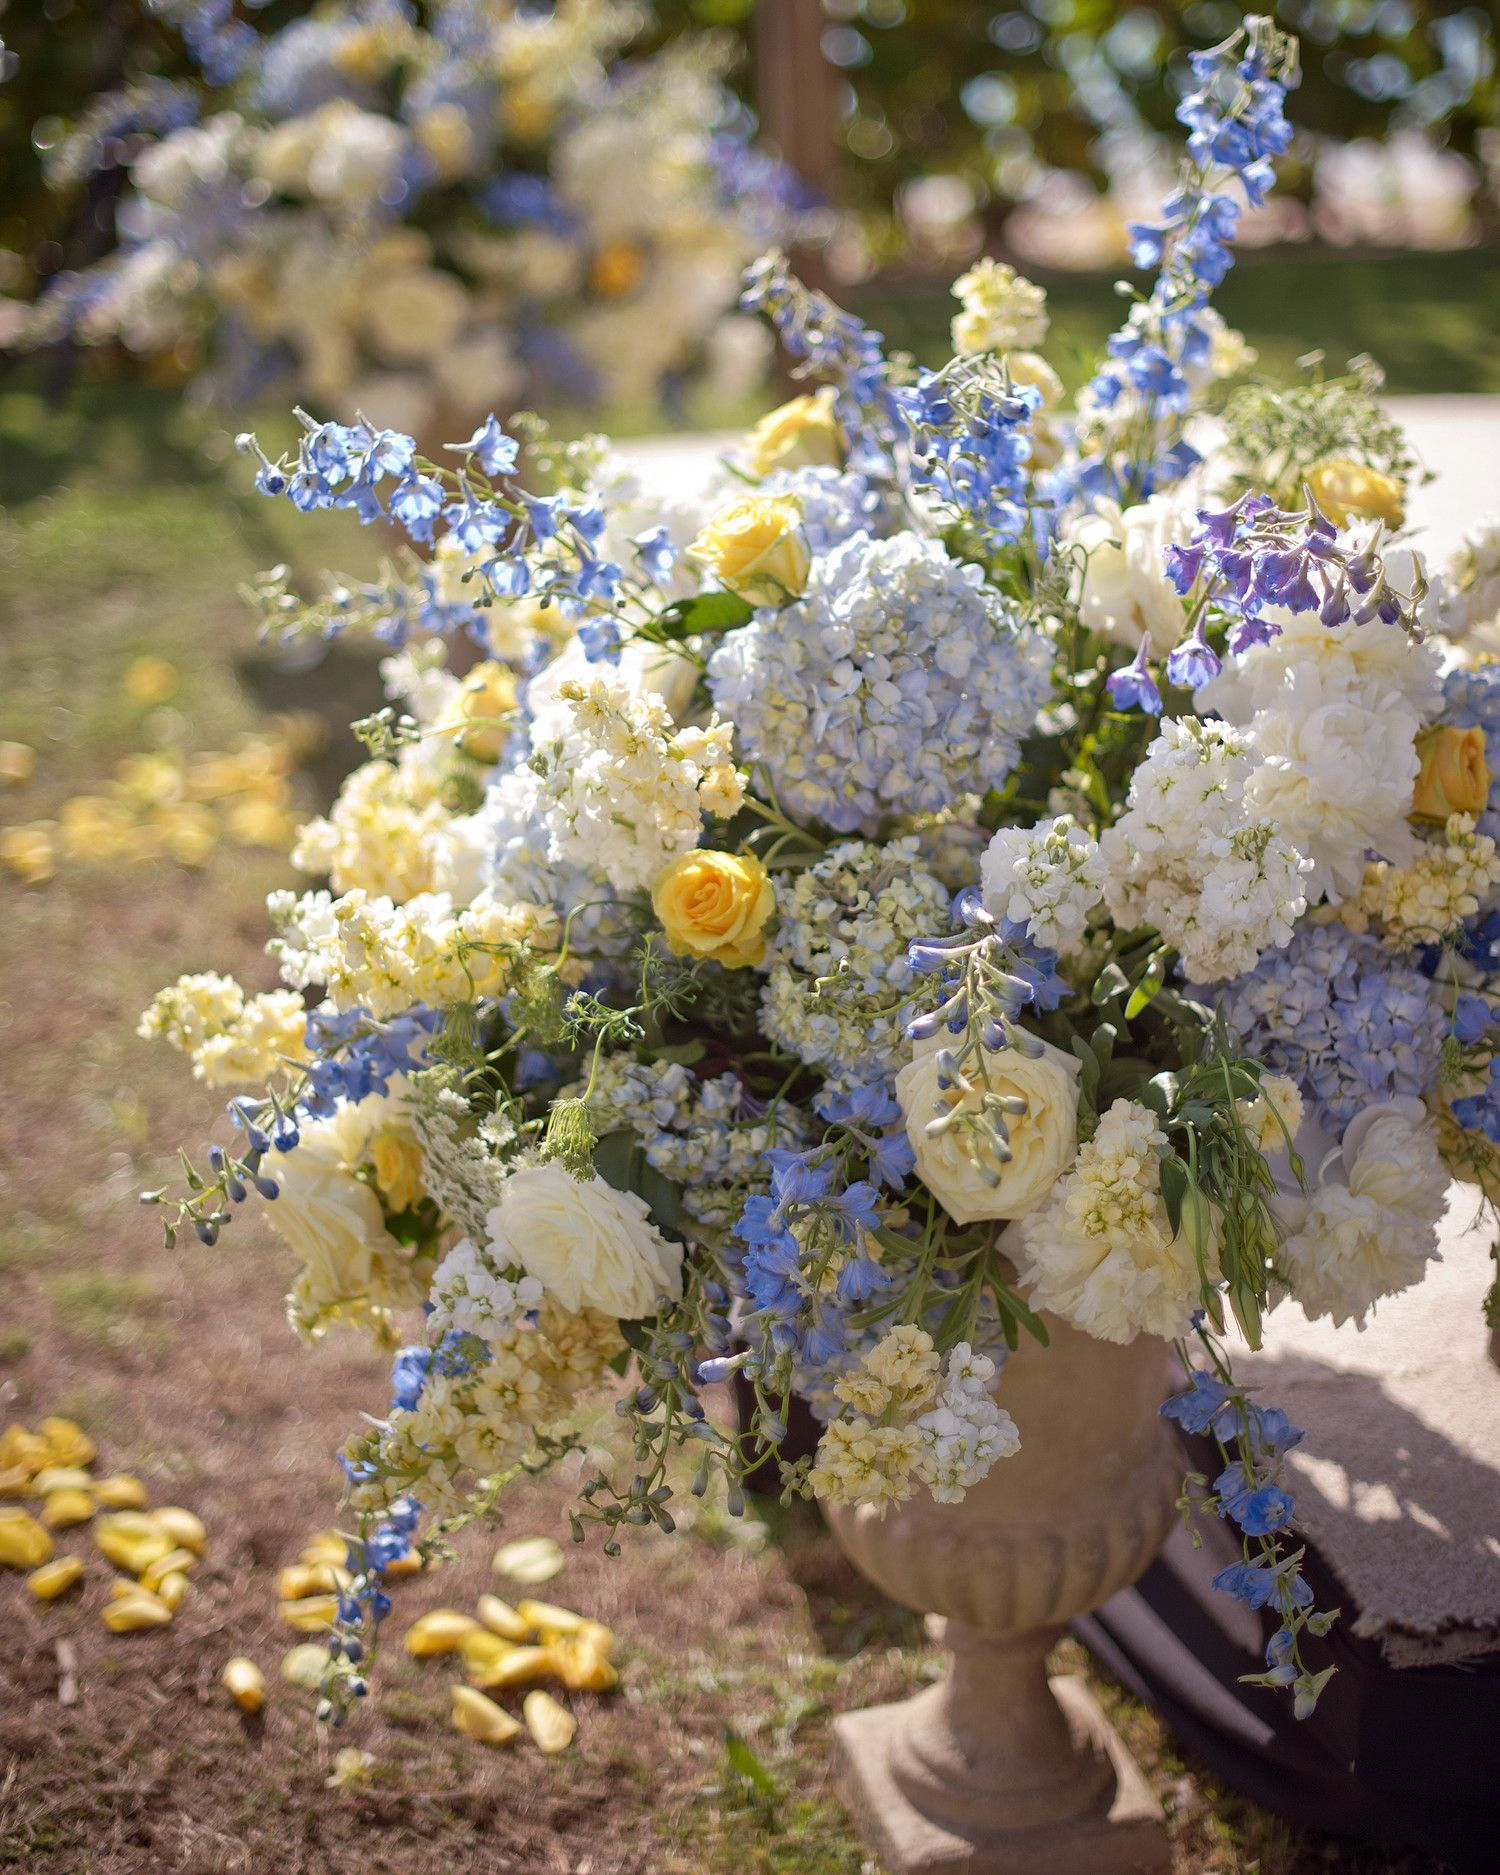 Wedding decor images zimbabwe  Blue and yellow flowers decorated the area  Floral  Pinterest